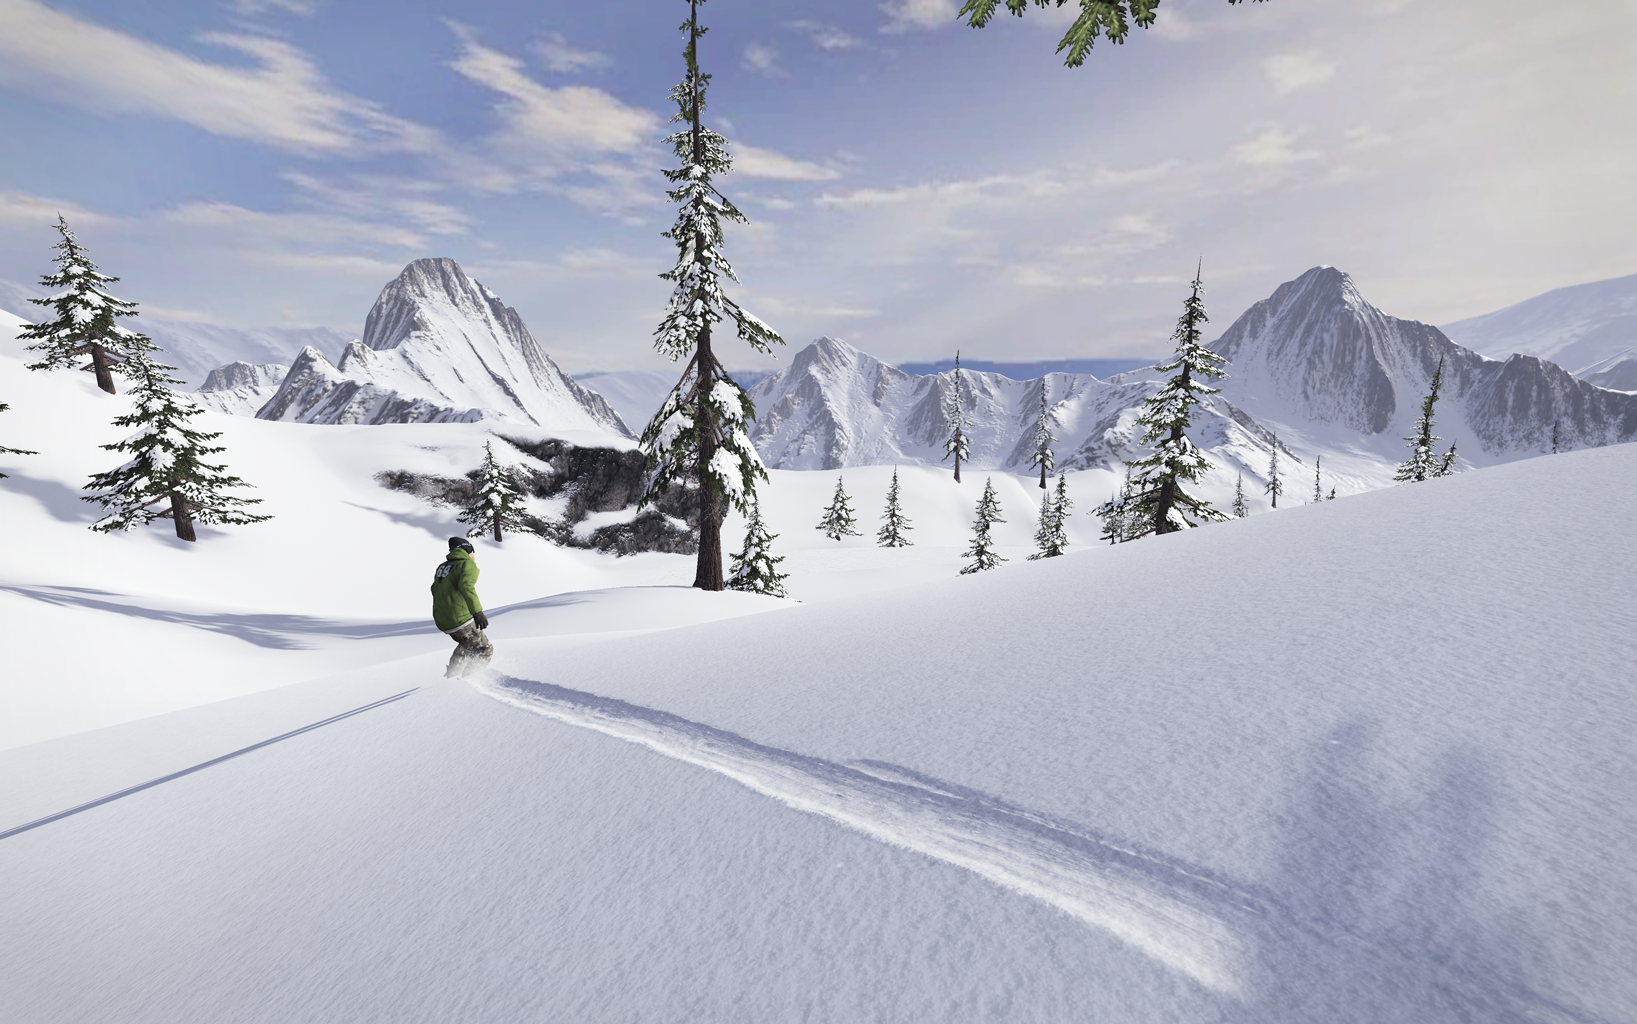 snowboard game screenshot 2015 02